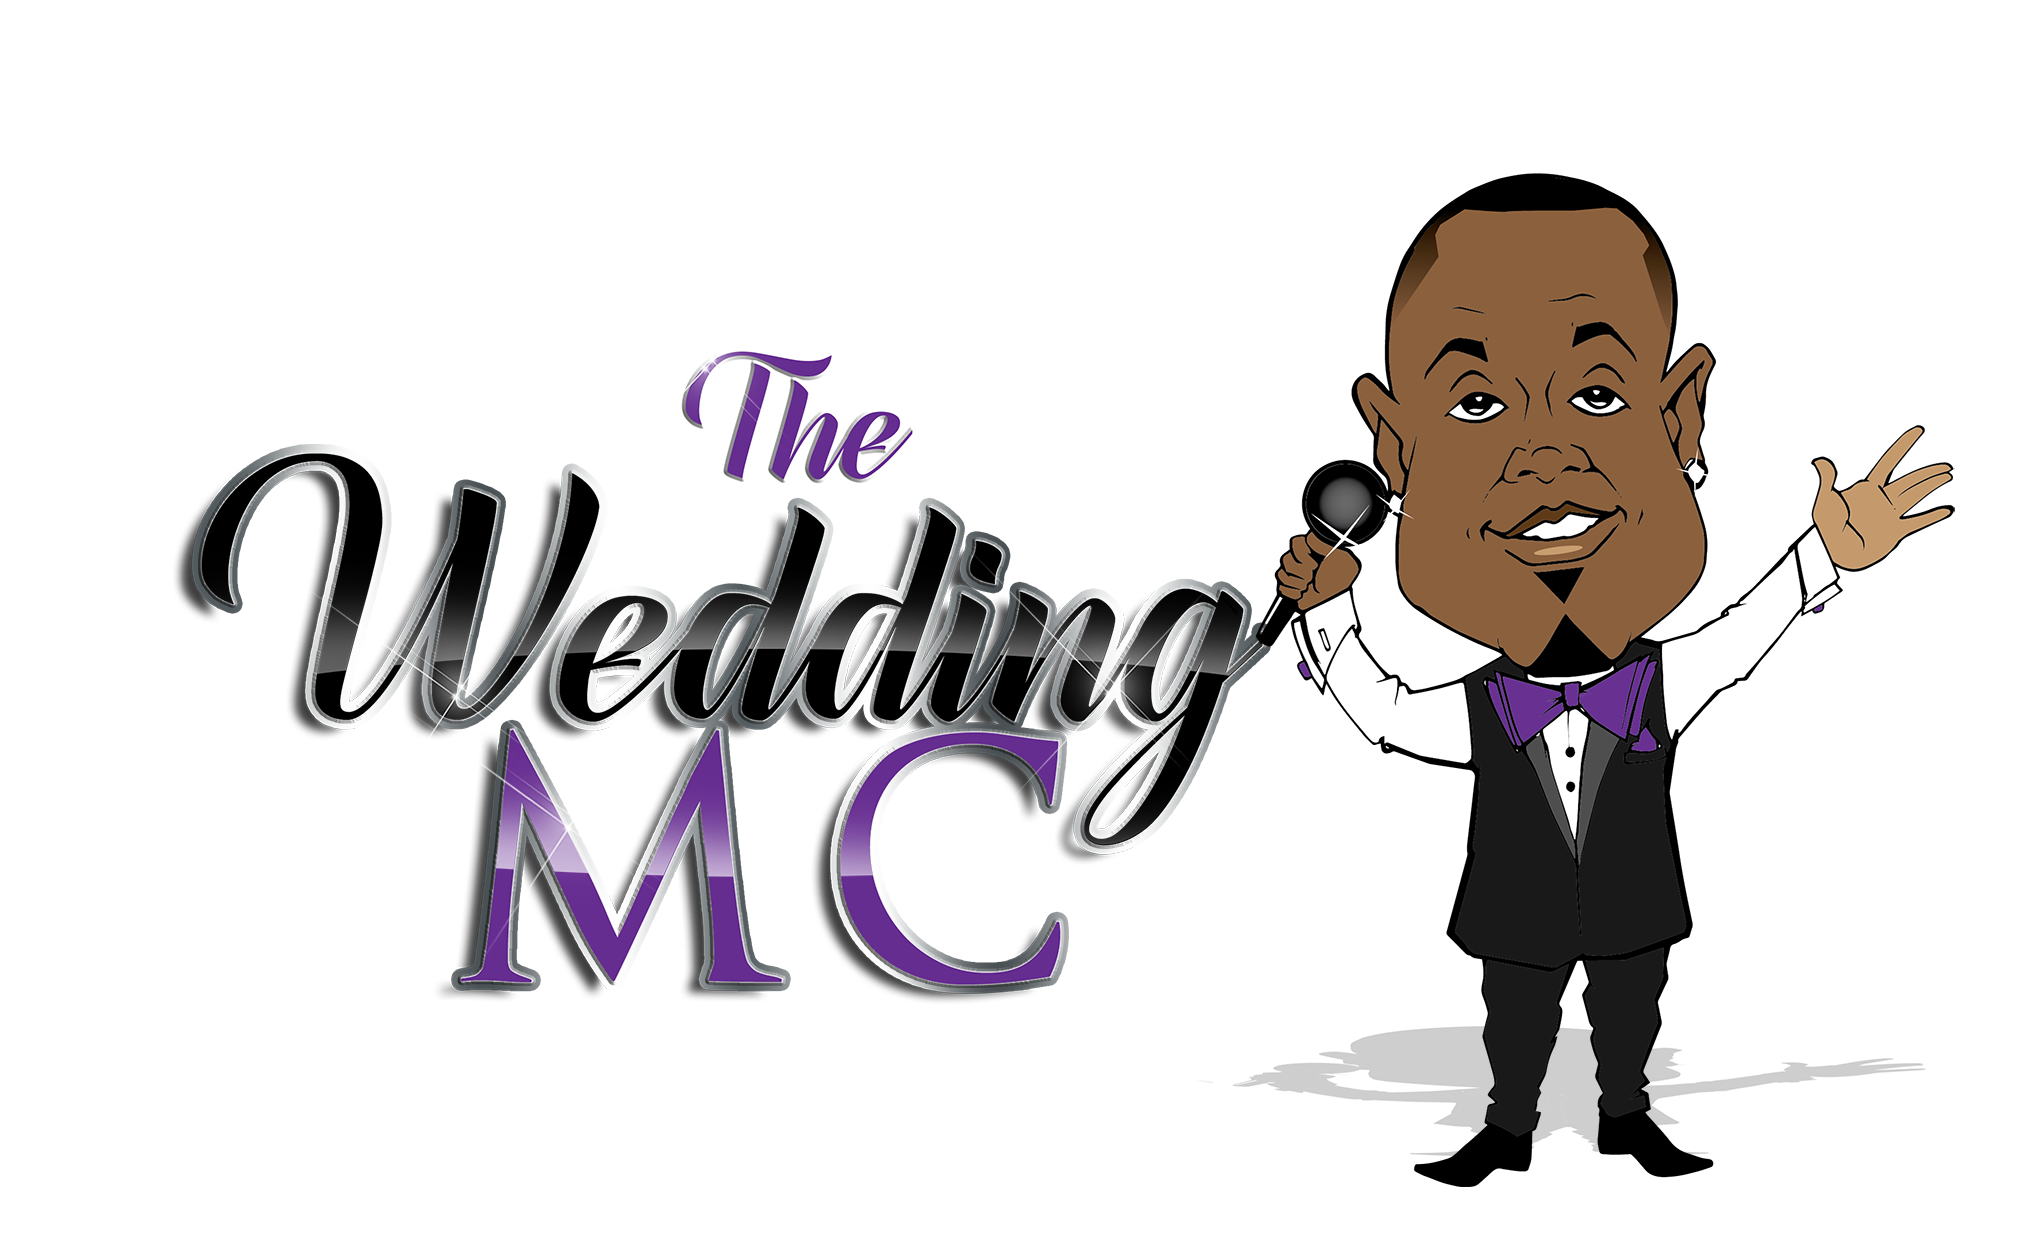 The WeddingMC Man logo.